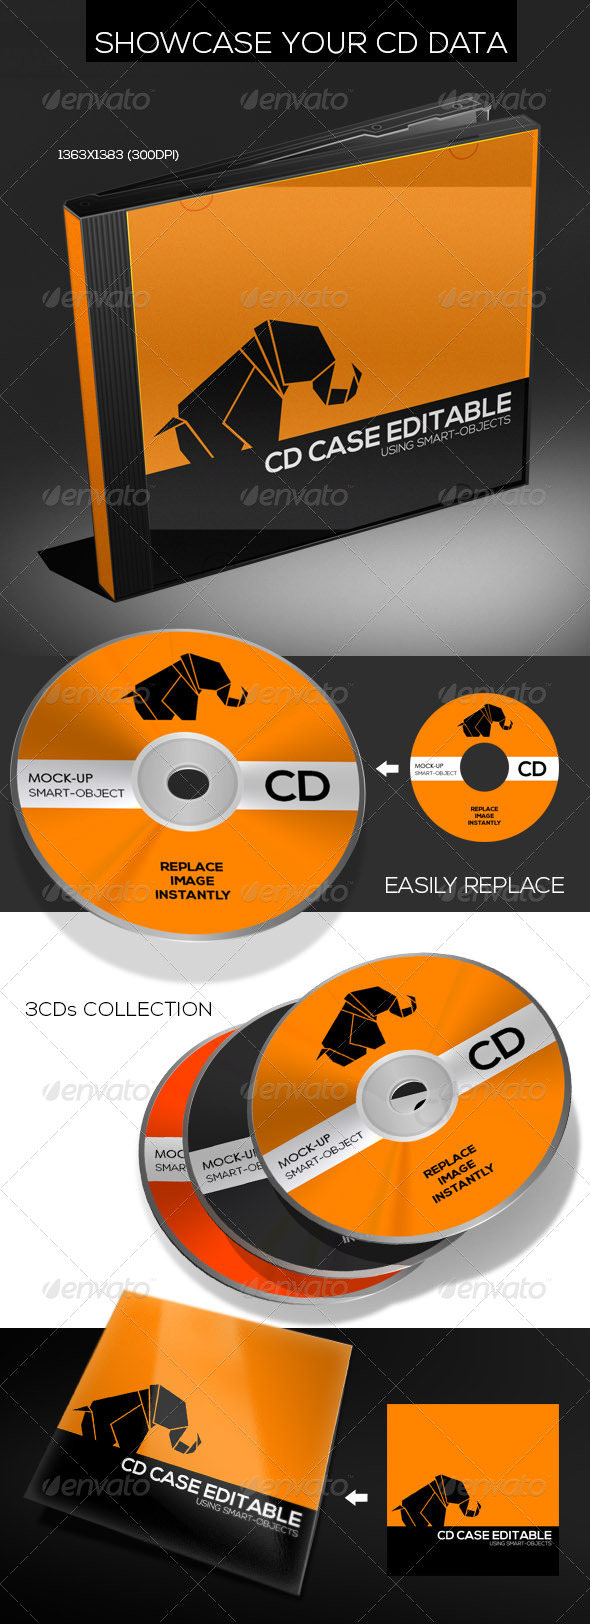 Realistic CD & CD Case Mock-Up - Discs Packaging